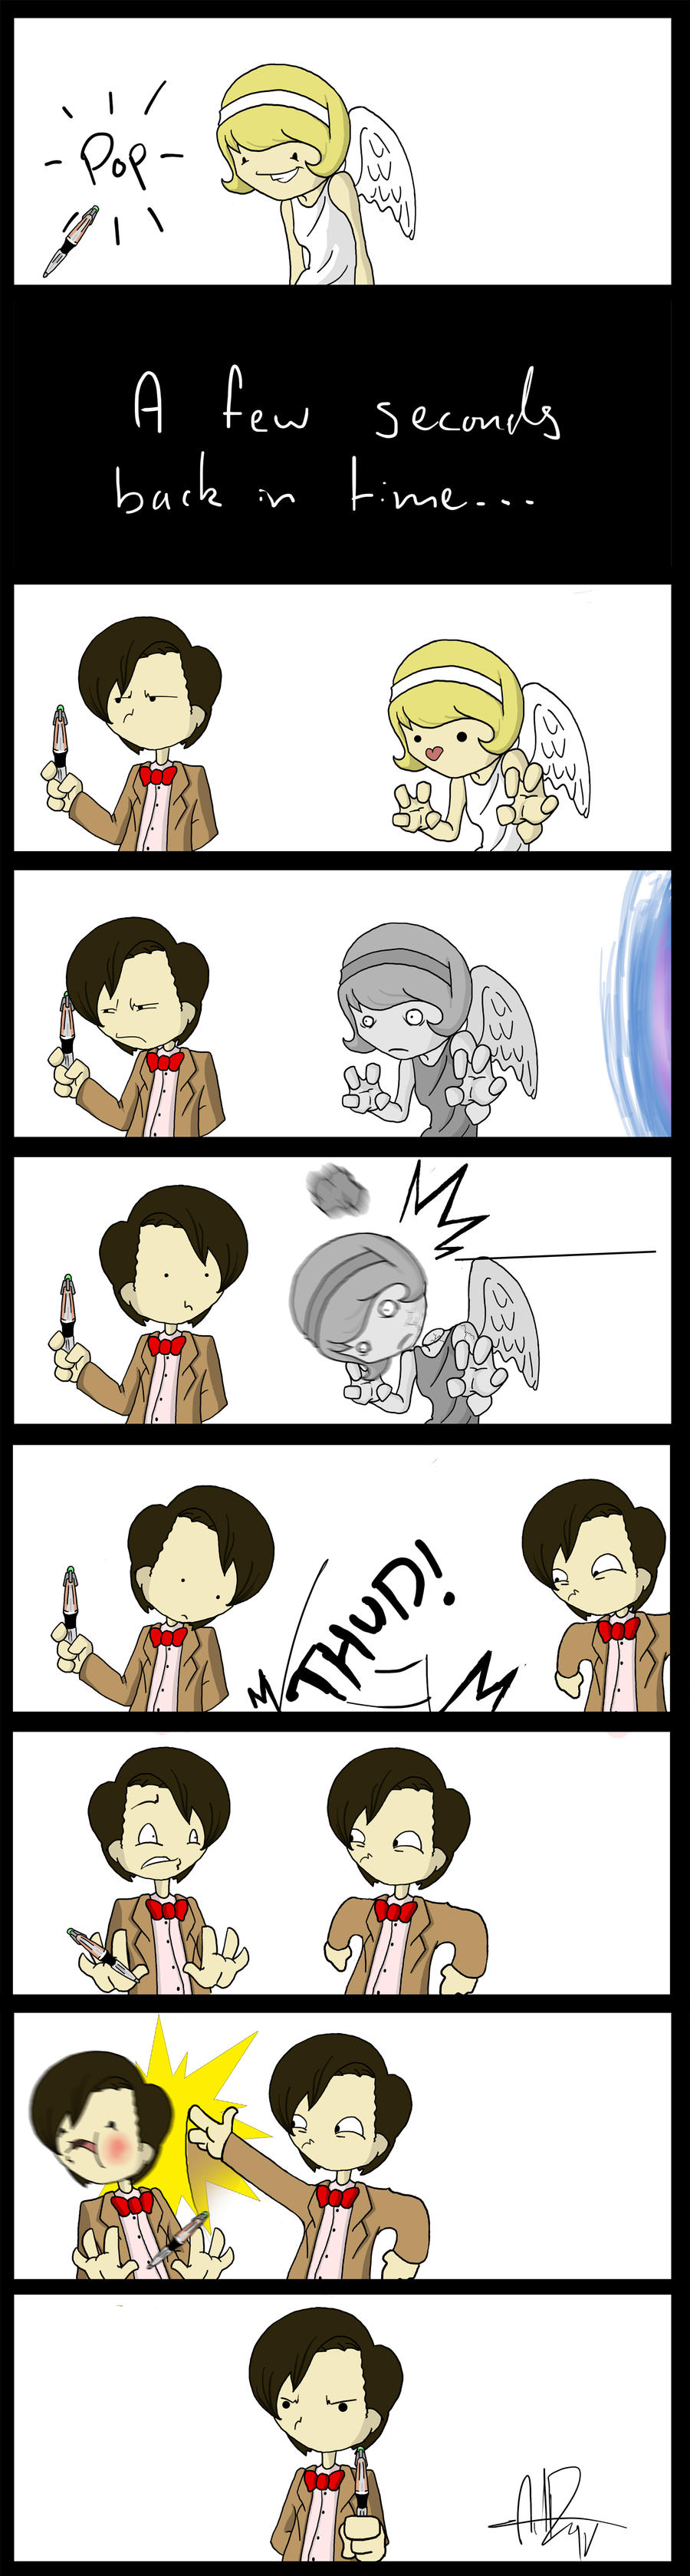 Matt Smith Doctor Who part 2 by Blizarro